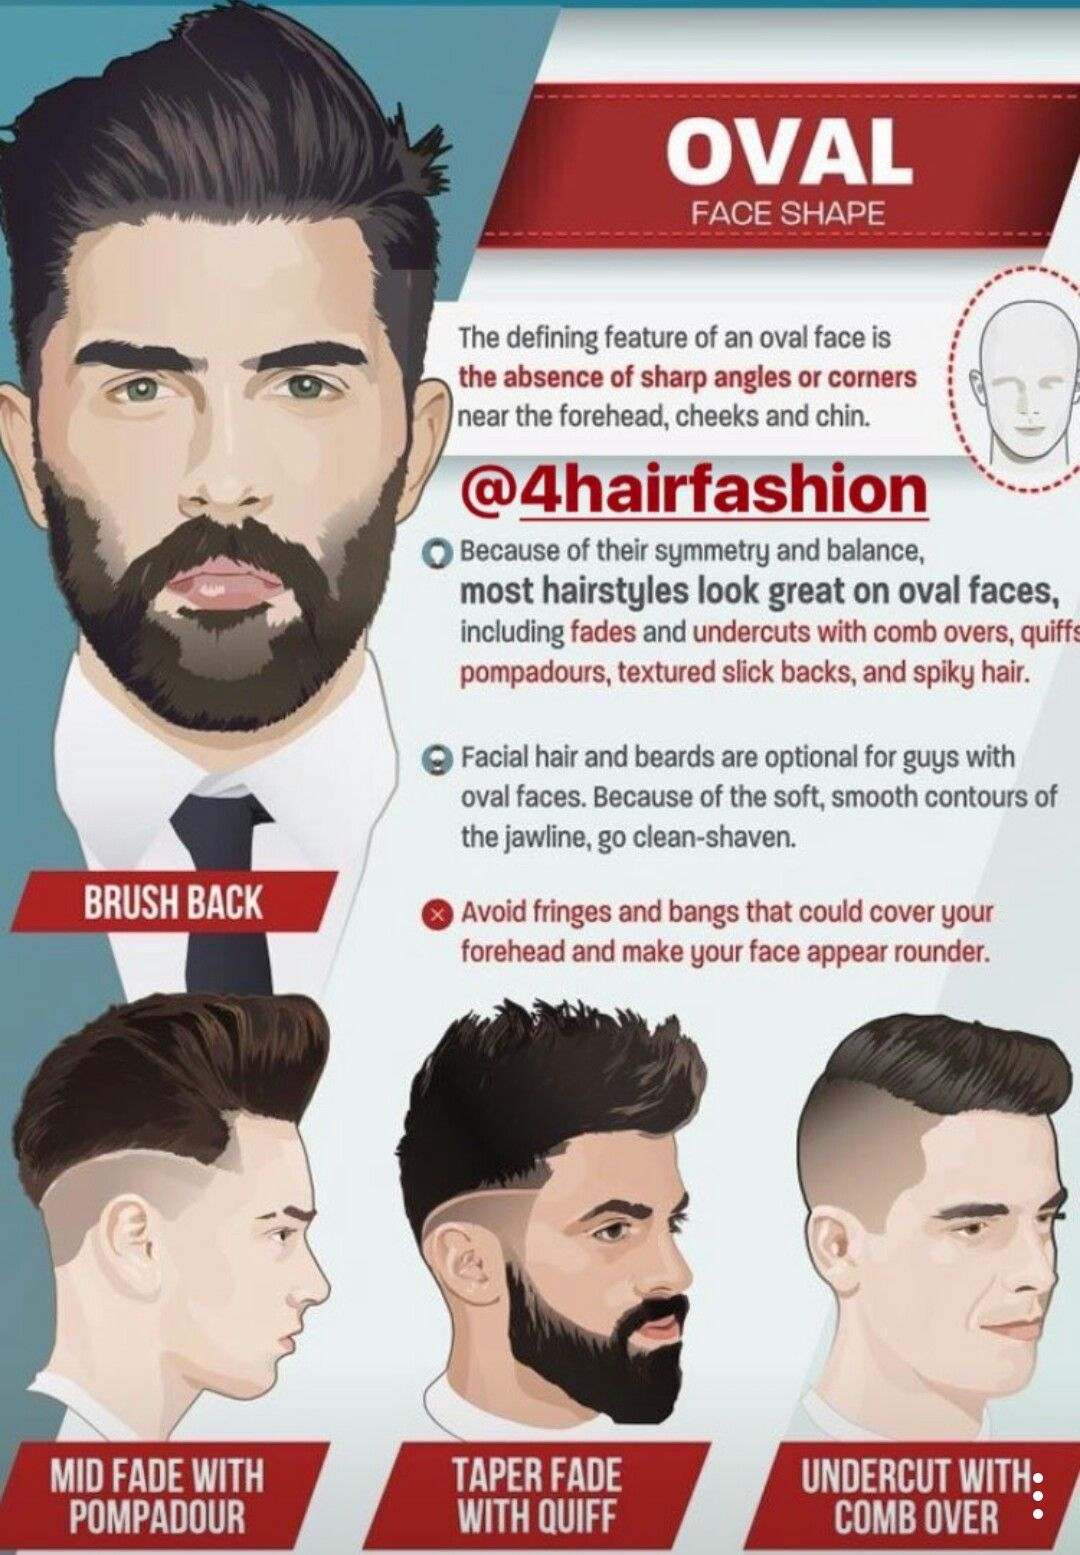 pin by lyuben georgiev on haircuts in 2019 | oval face